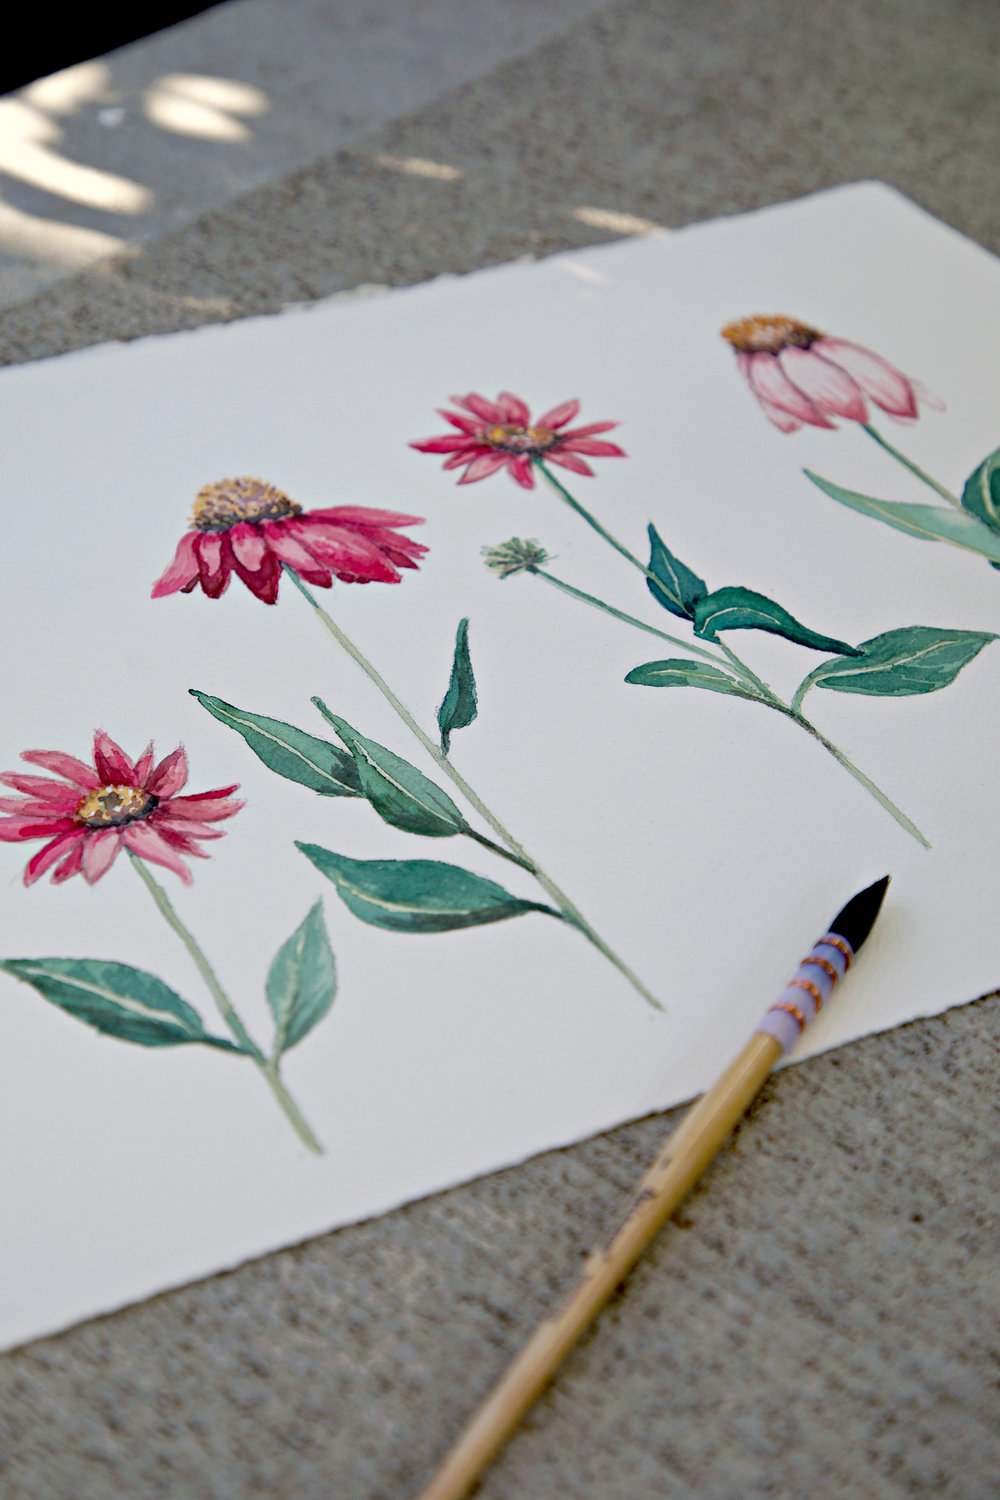 Coneflower Study by Sharon Holland